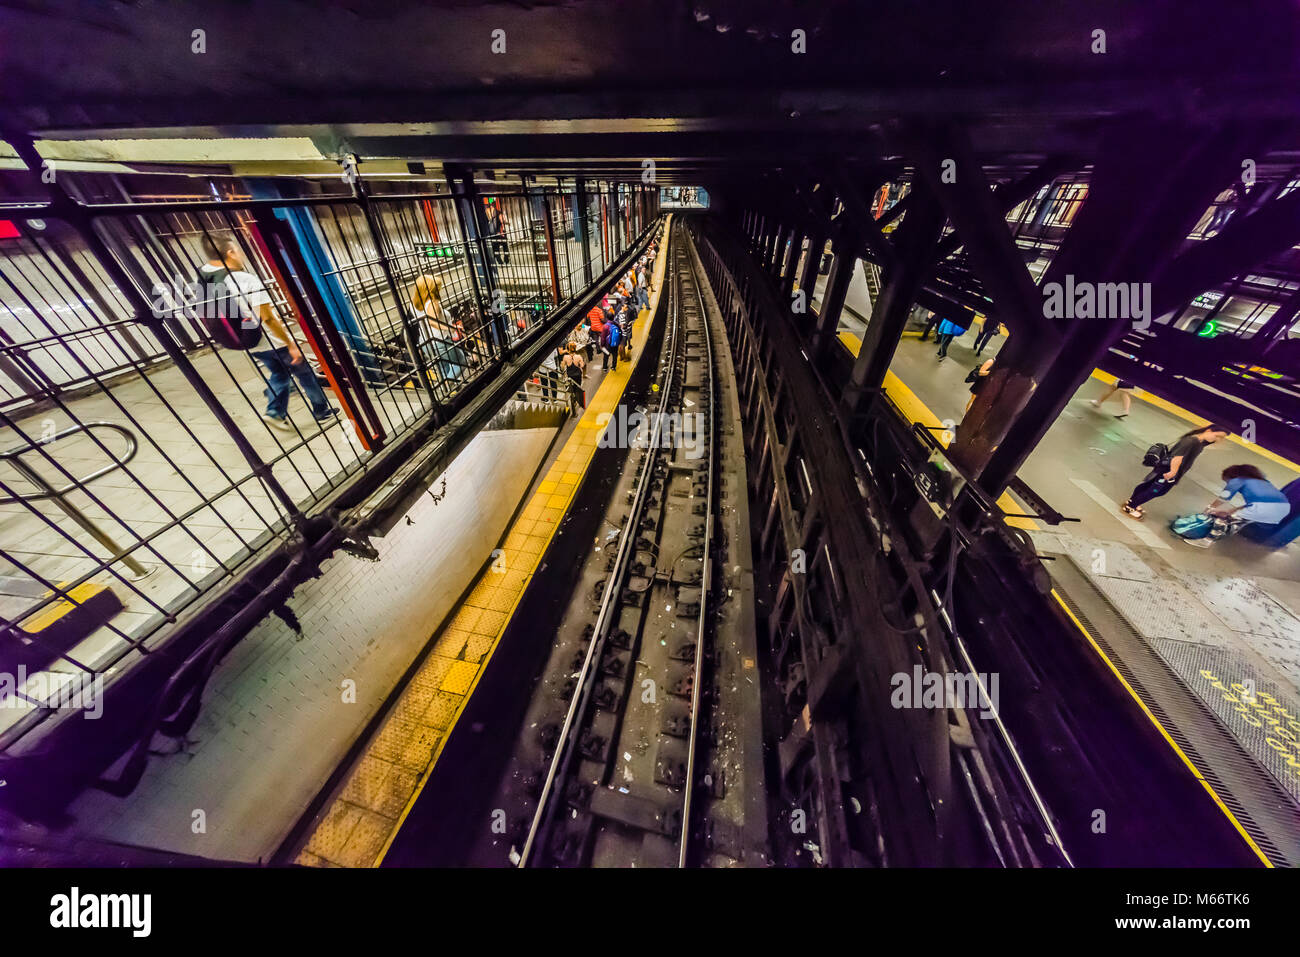 14. Straße - Union Square U-Bahn Station Manhattan_New York, New York, USA Stockfoto